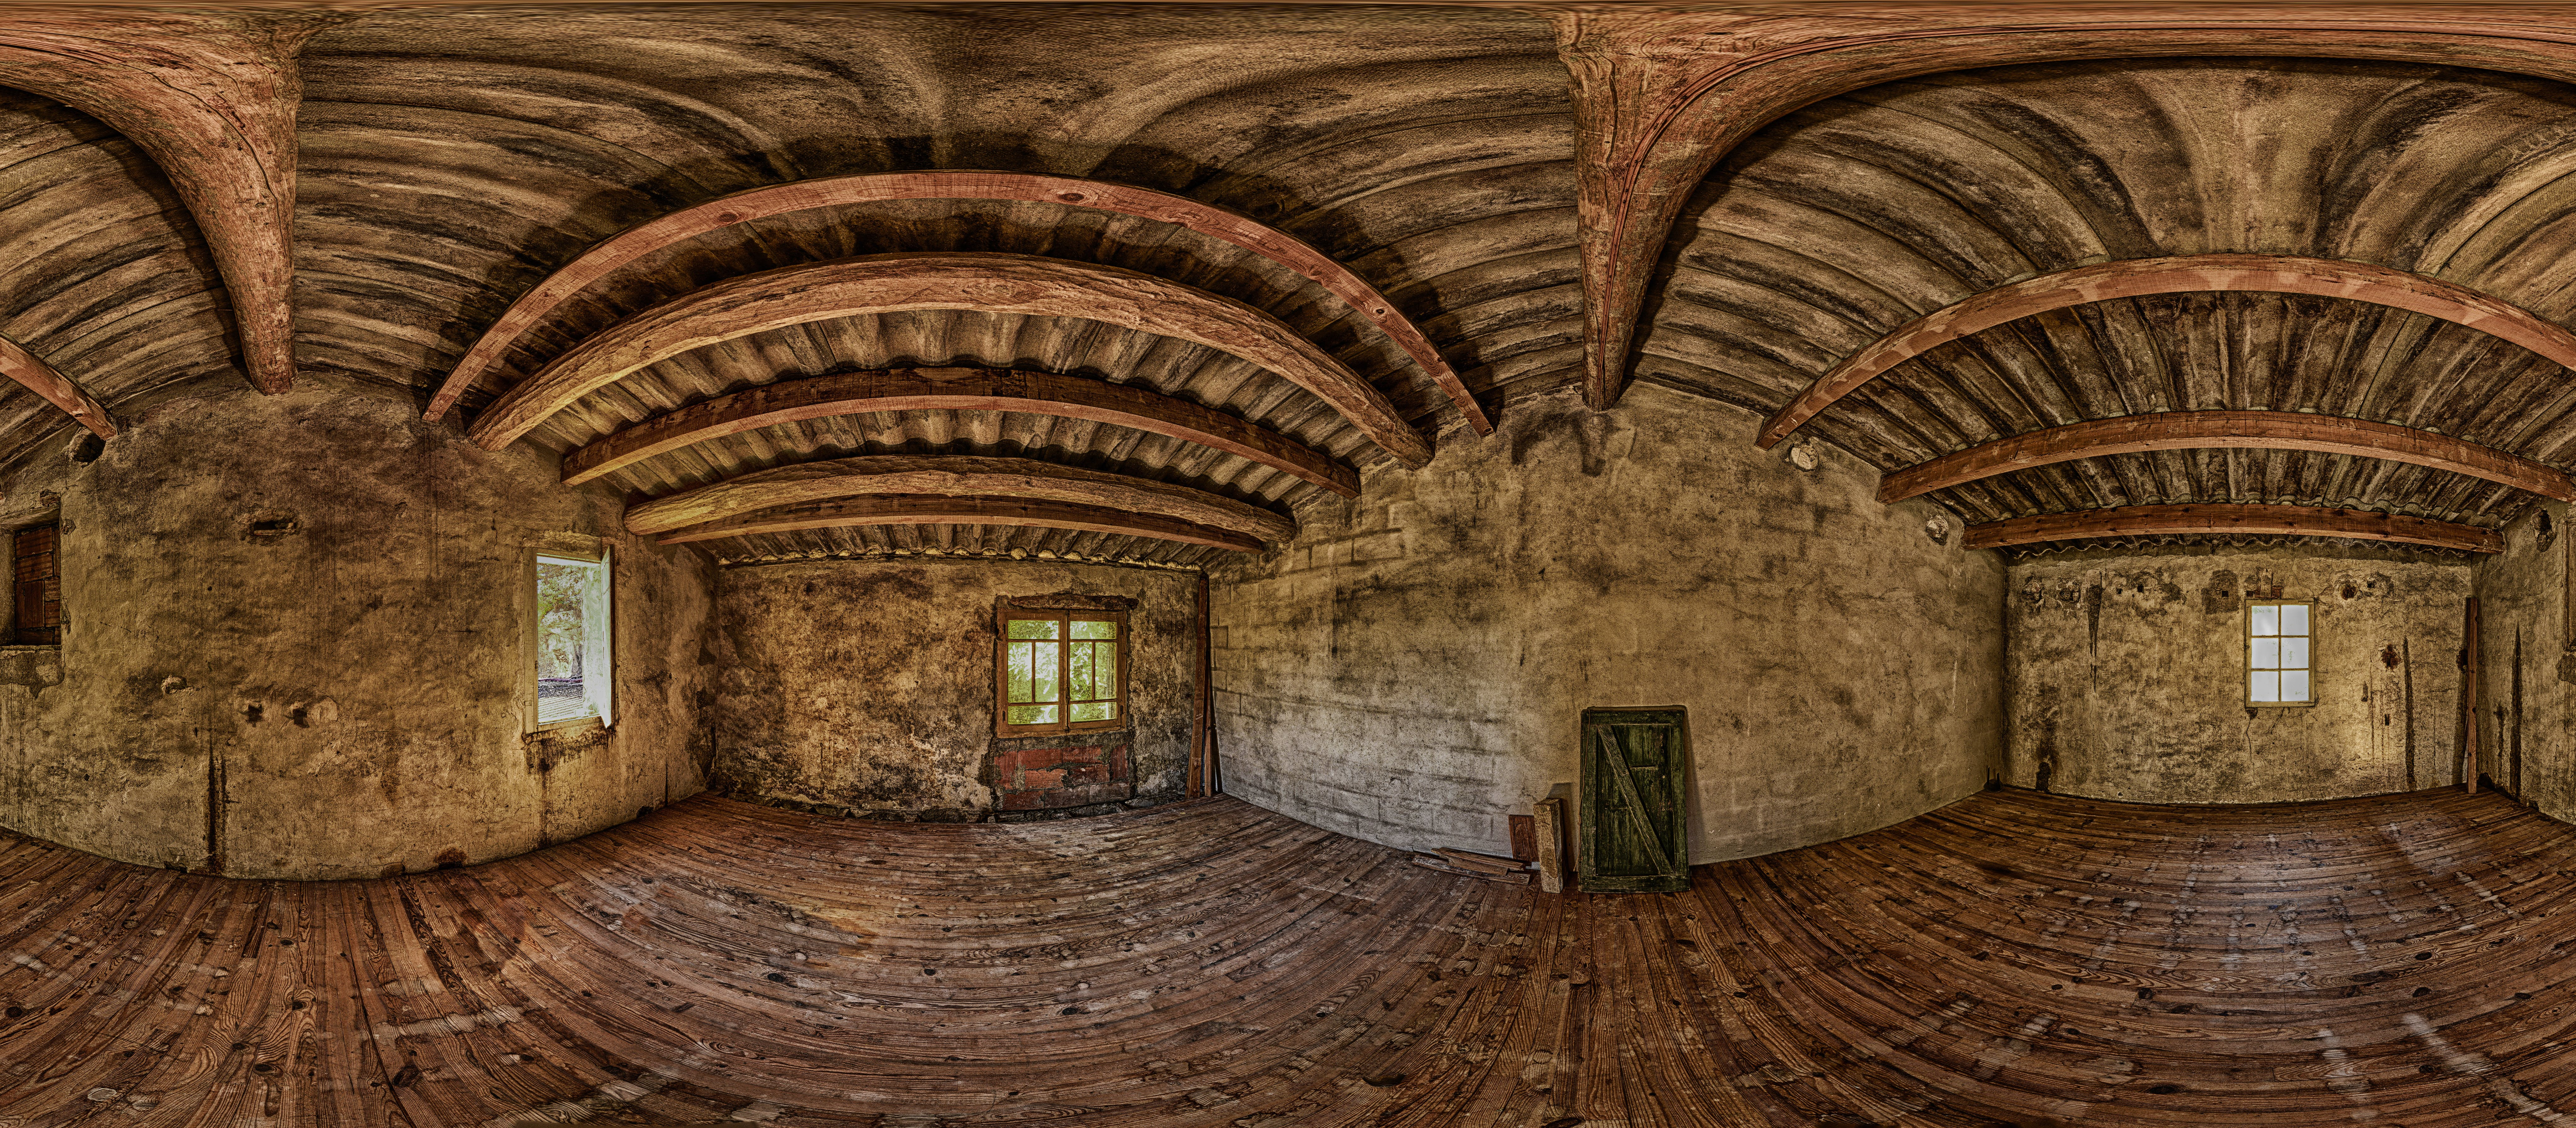 Interior View of Wooden House